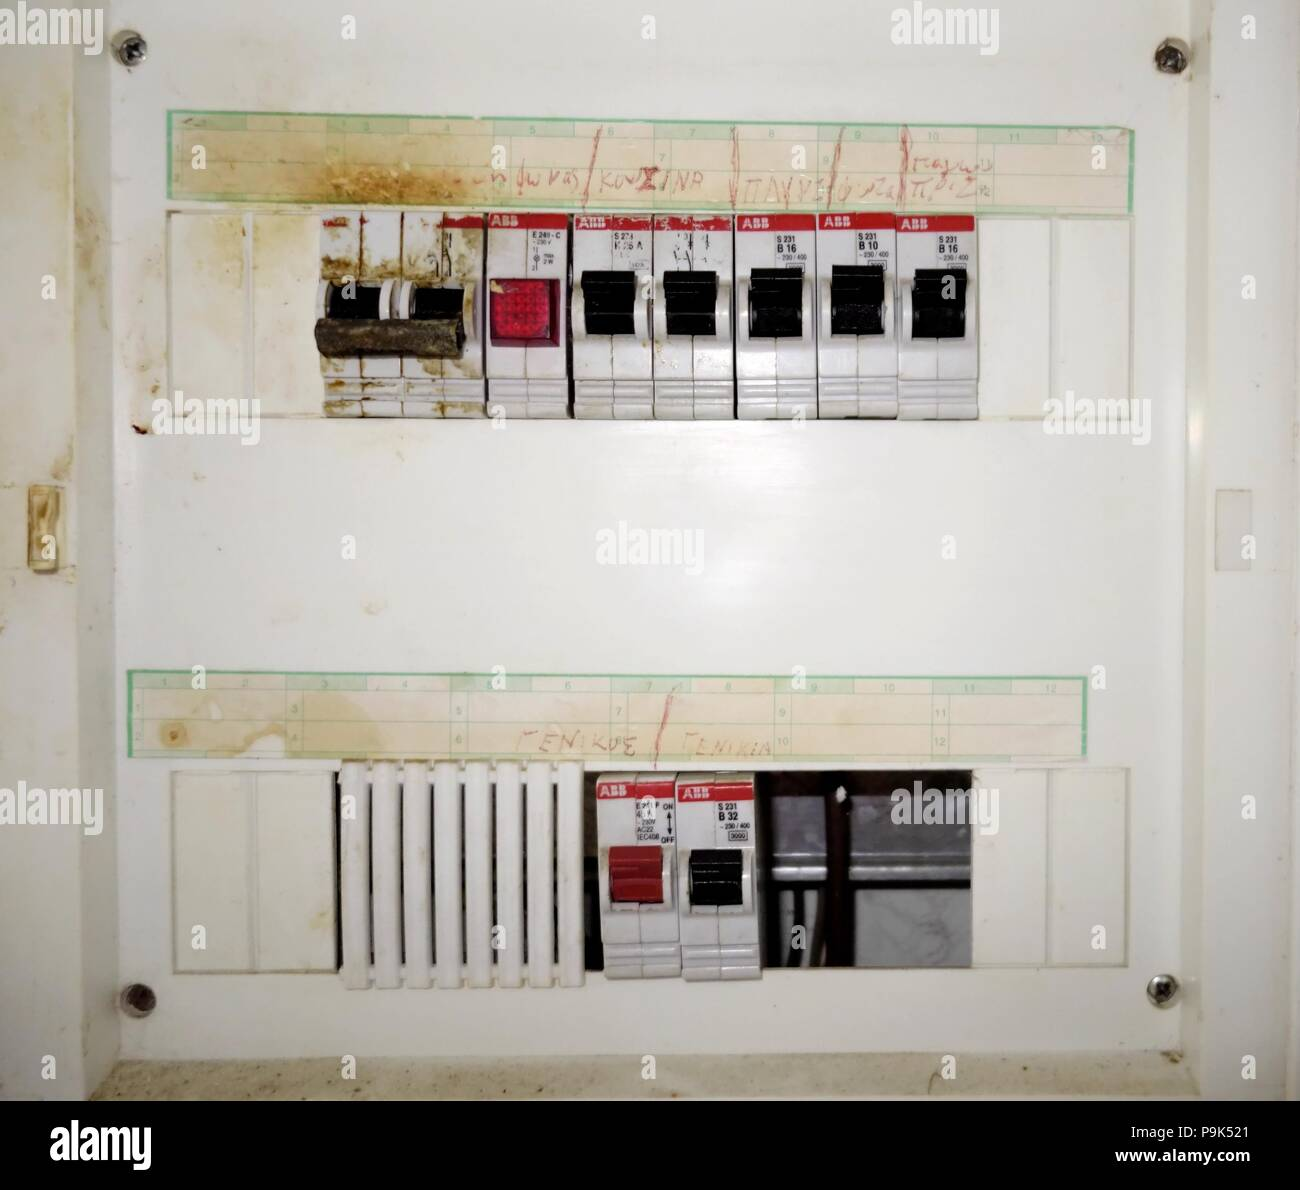 hight resolution of old greek fuse box stock image